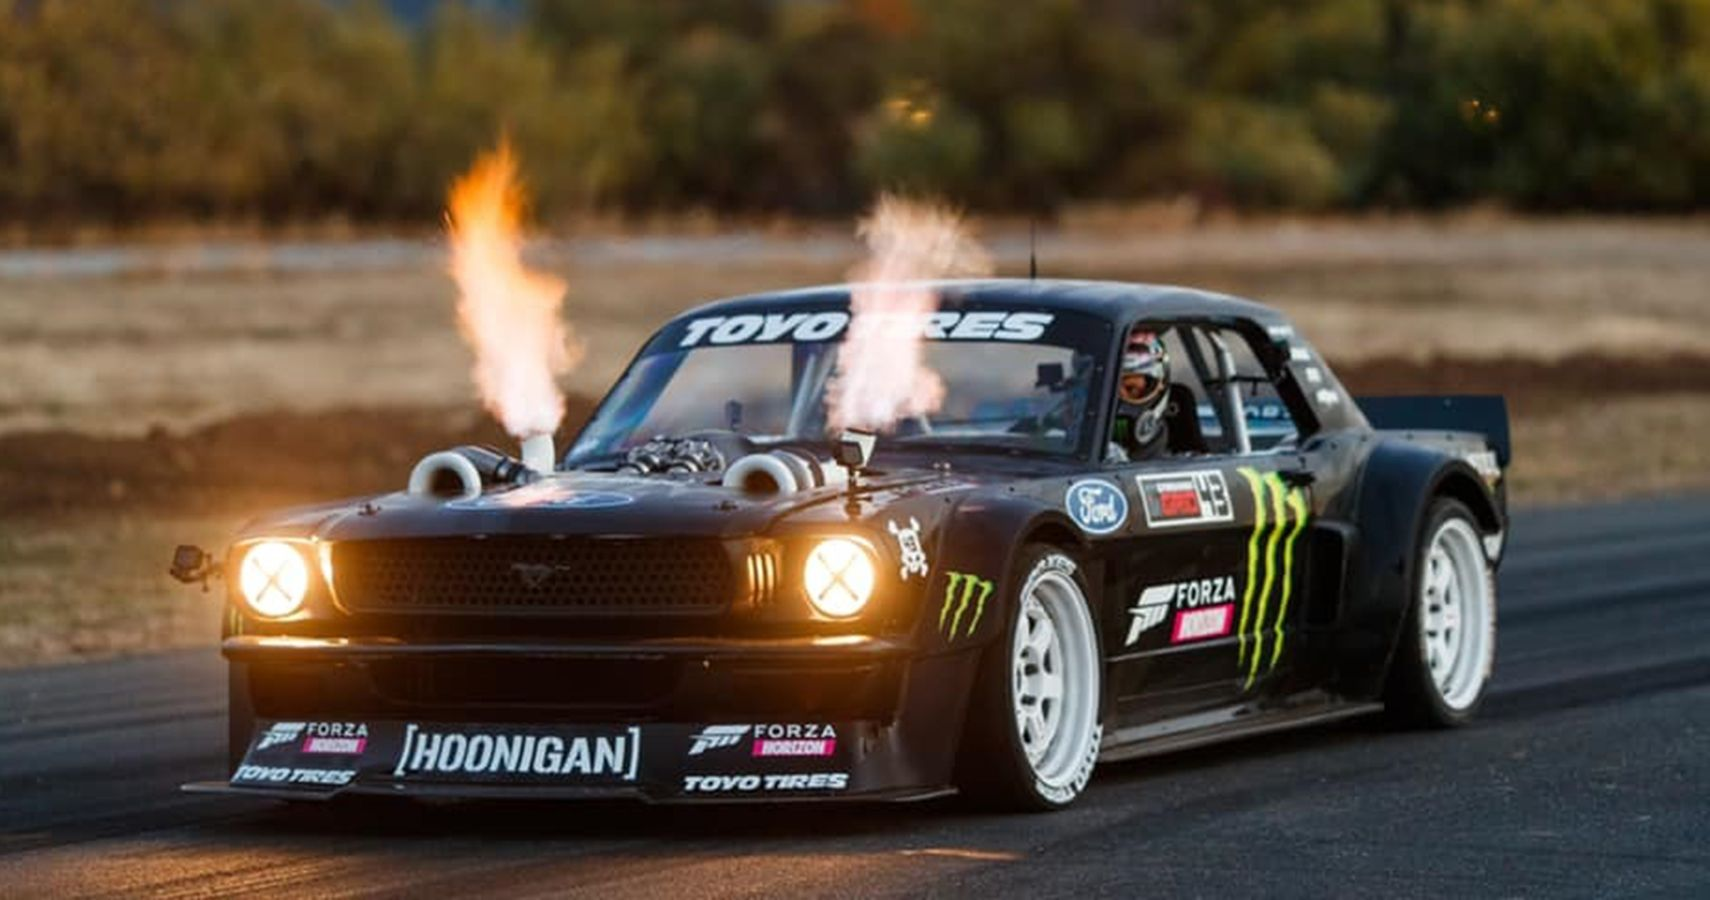 Ken Block Bids Farewell To Ford And His 1,400-HP Hoonicorn; New Partnership On The Horizon?